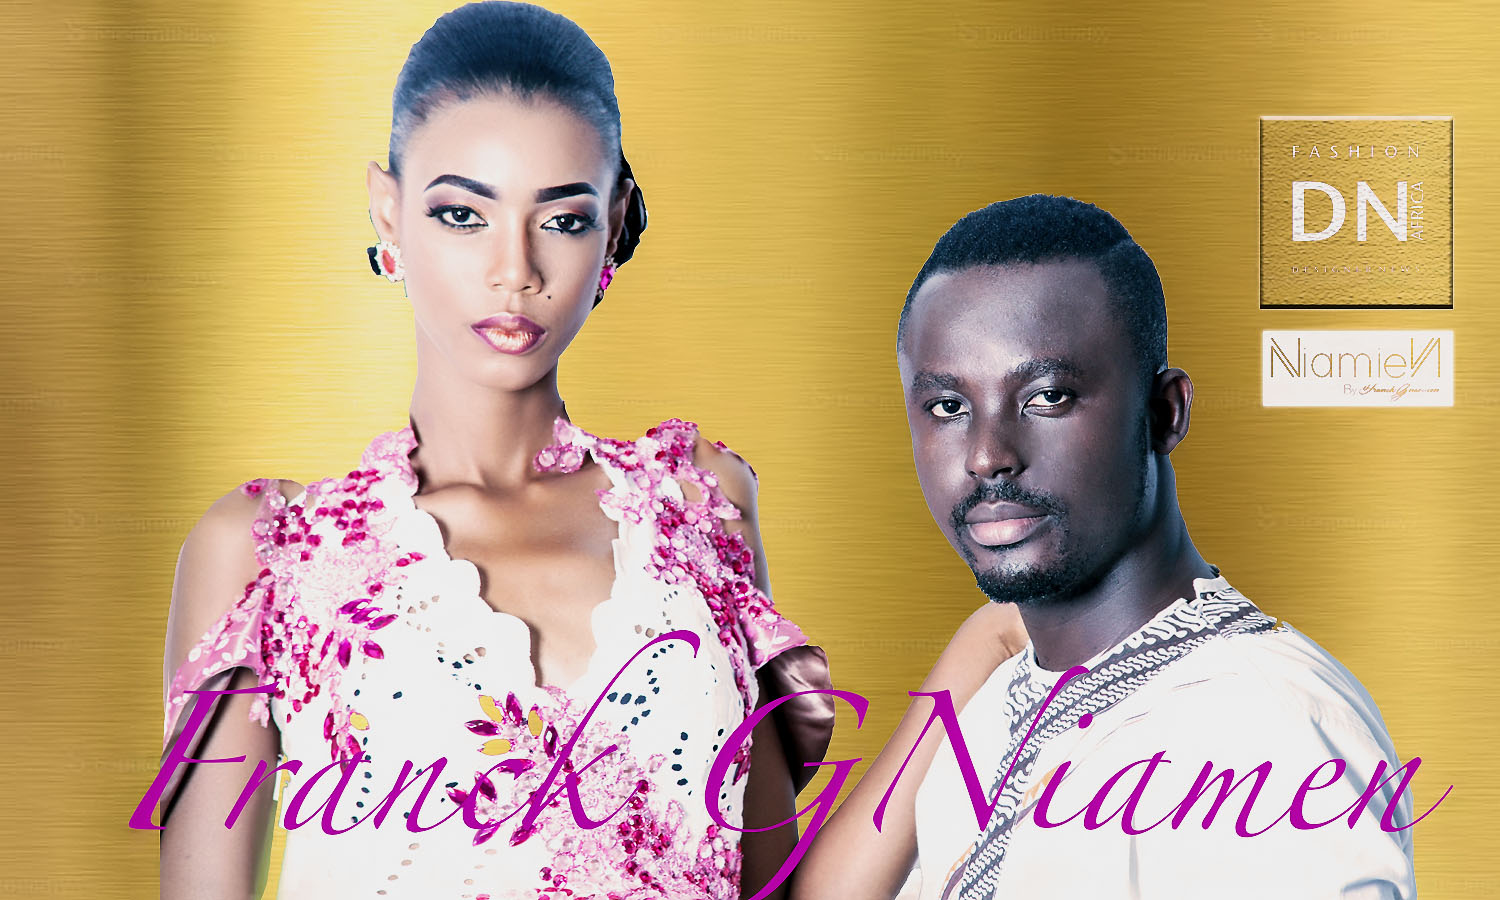 MODE AFRICAINE-FRANK GNAMIEN-DNAFRICA-AFRICAN STYLE